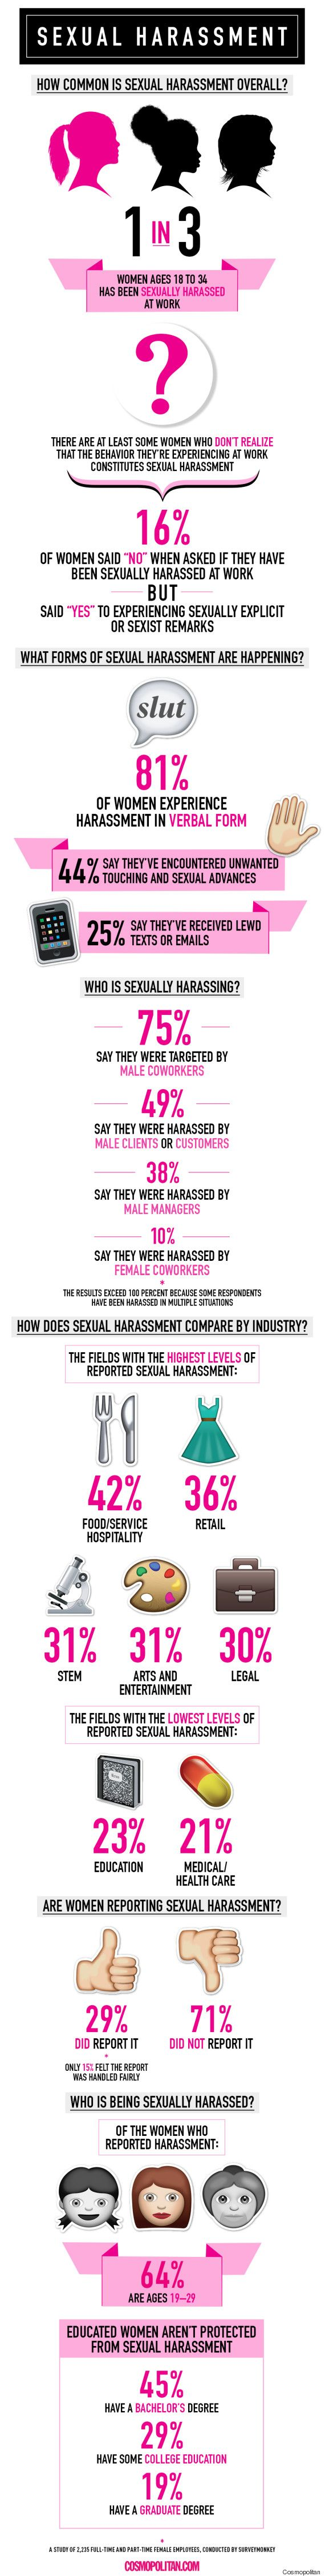 A new survey found that one in three women between the ages of 18-34 has been sexually harassed at work.